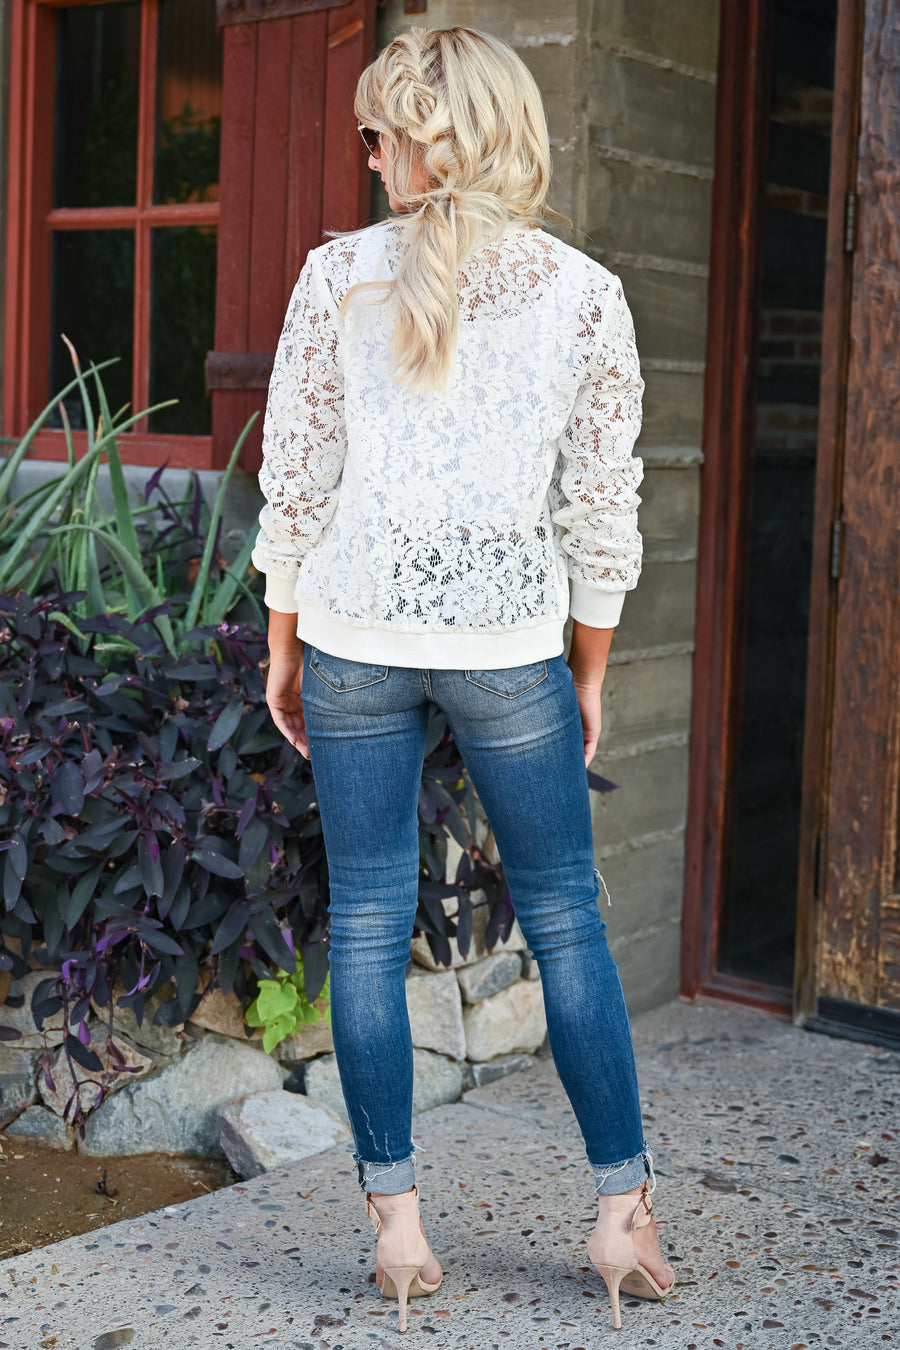 Chic Statement Lace Bomber Jacket - White womens trendy long sleeve sheer lace detail zipper bomber jacket closet candy front